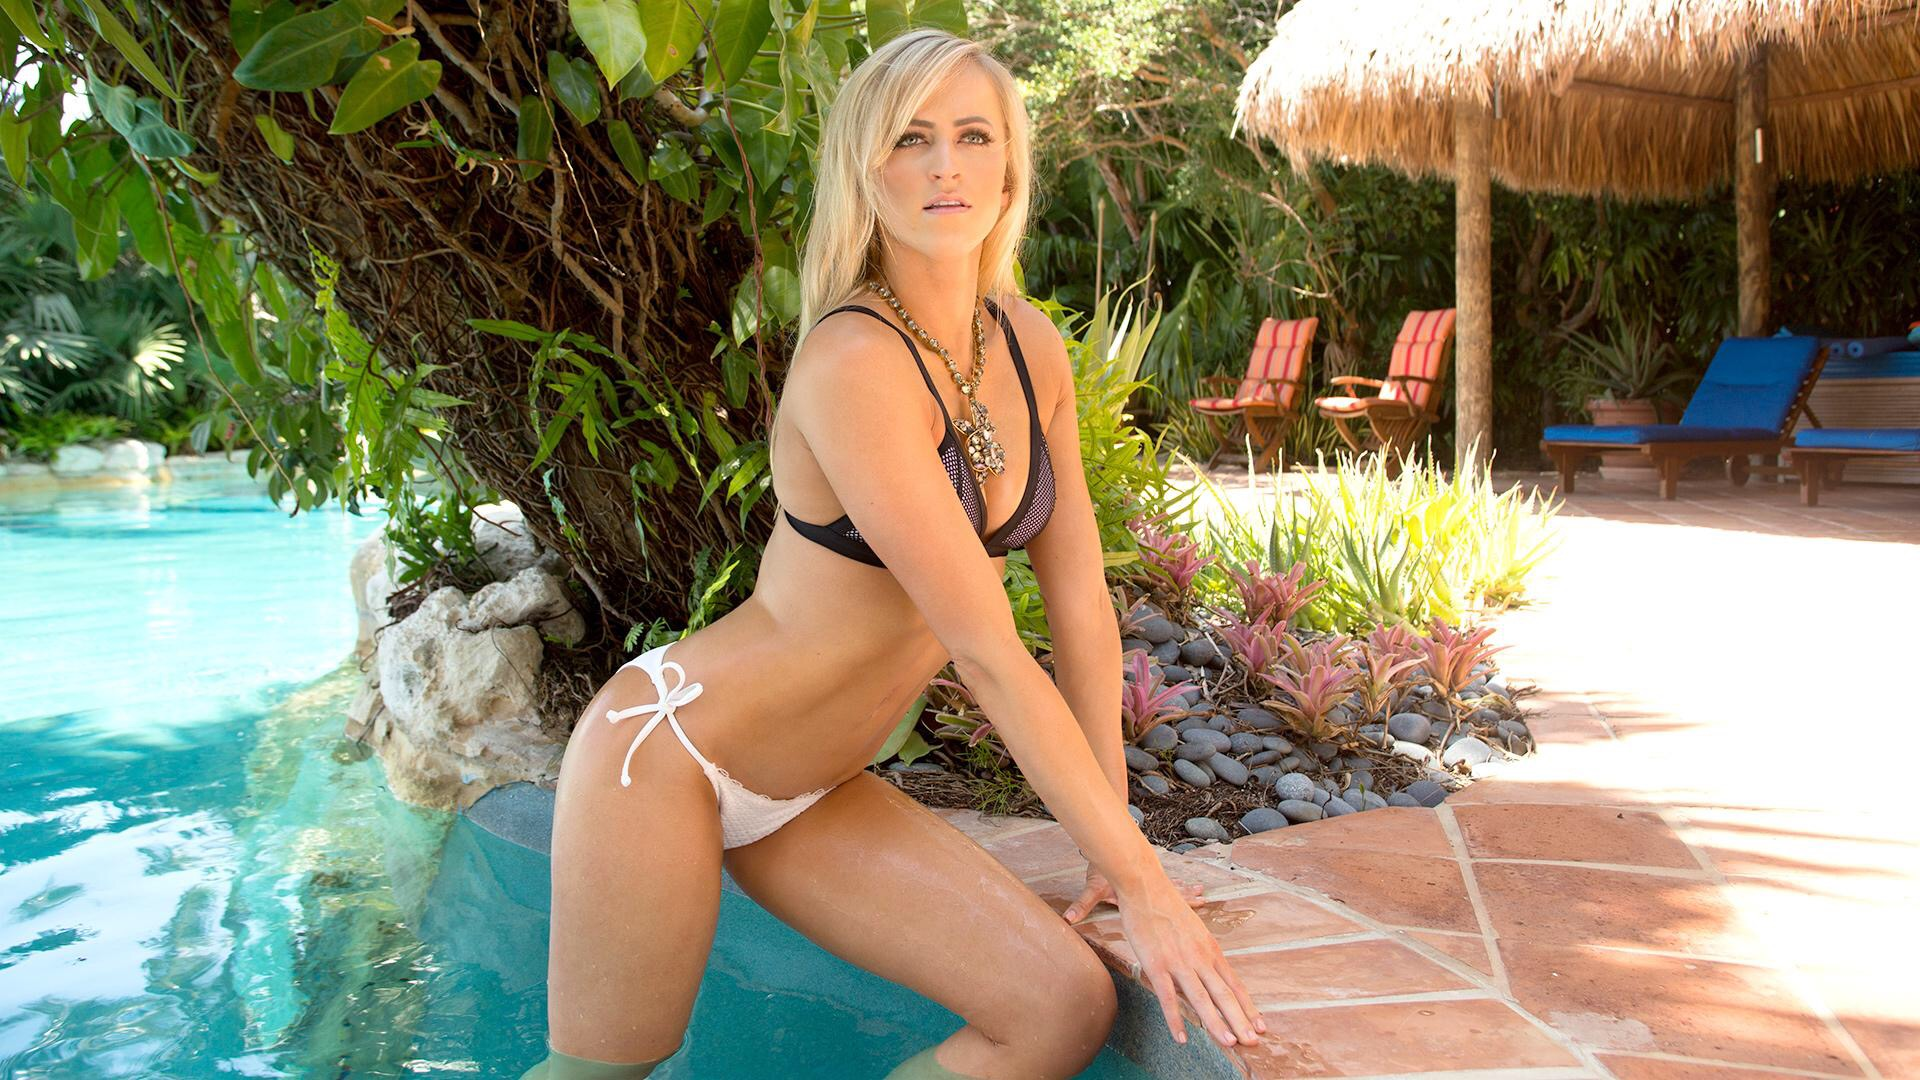 Summer Rae BIkini Hot